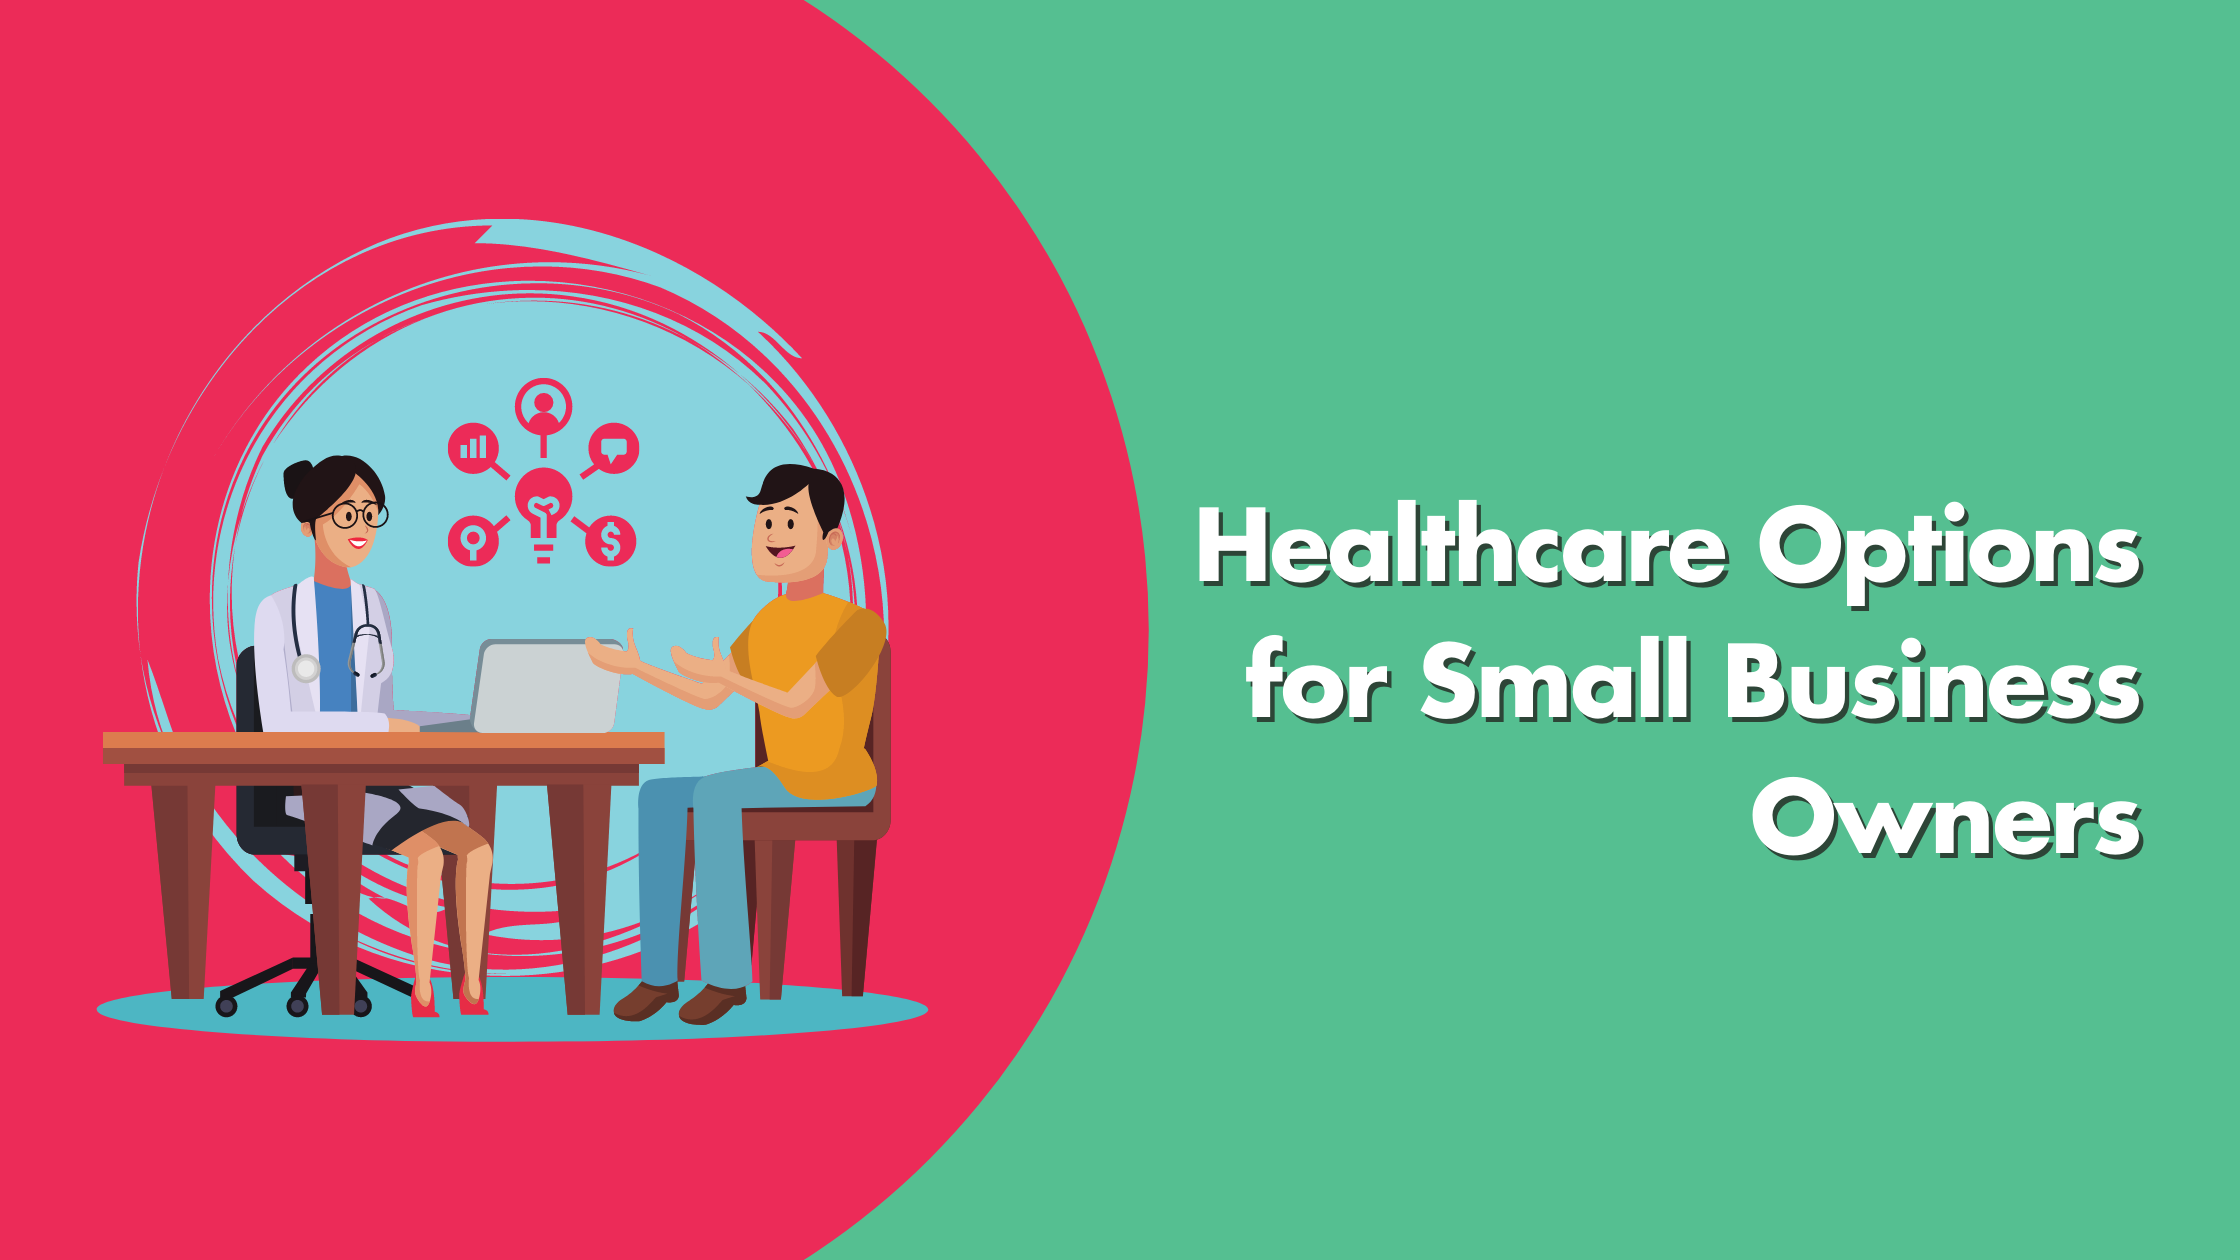 Healthcare Options For Small Business Owners